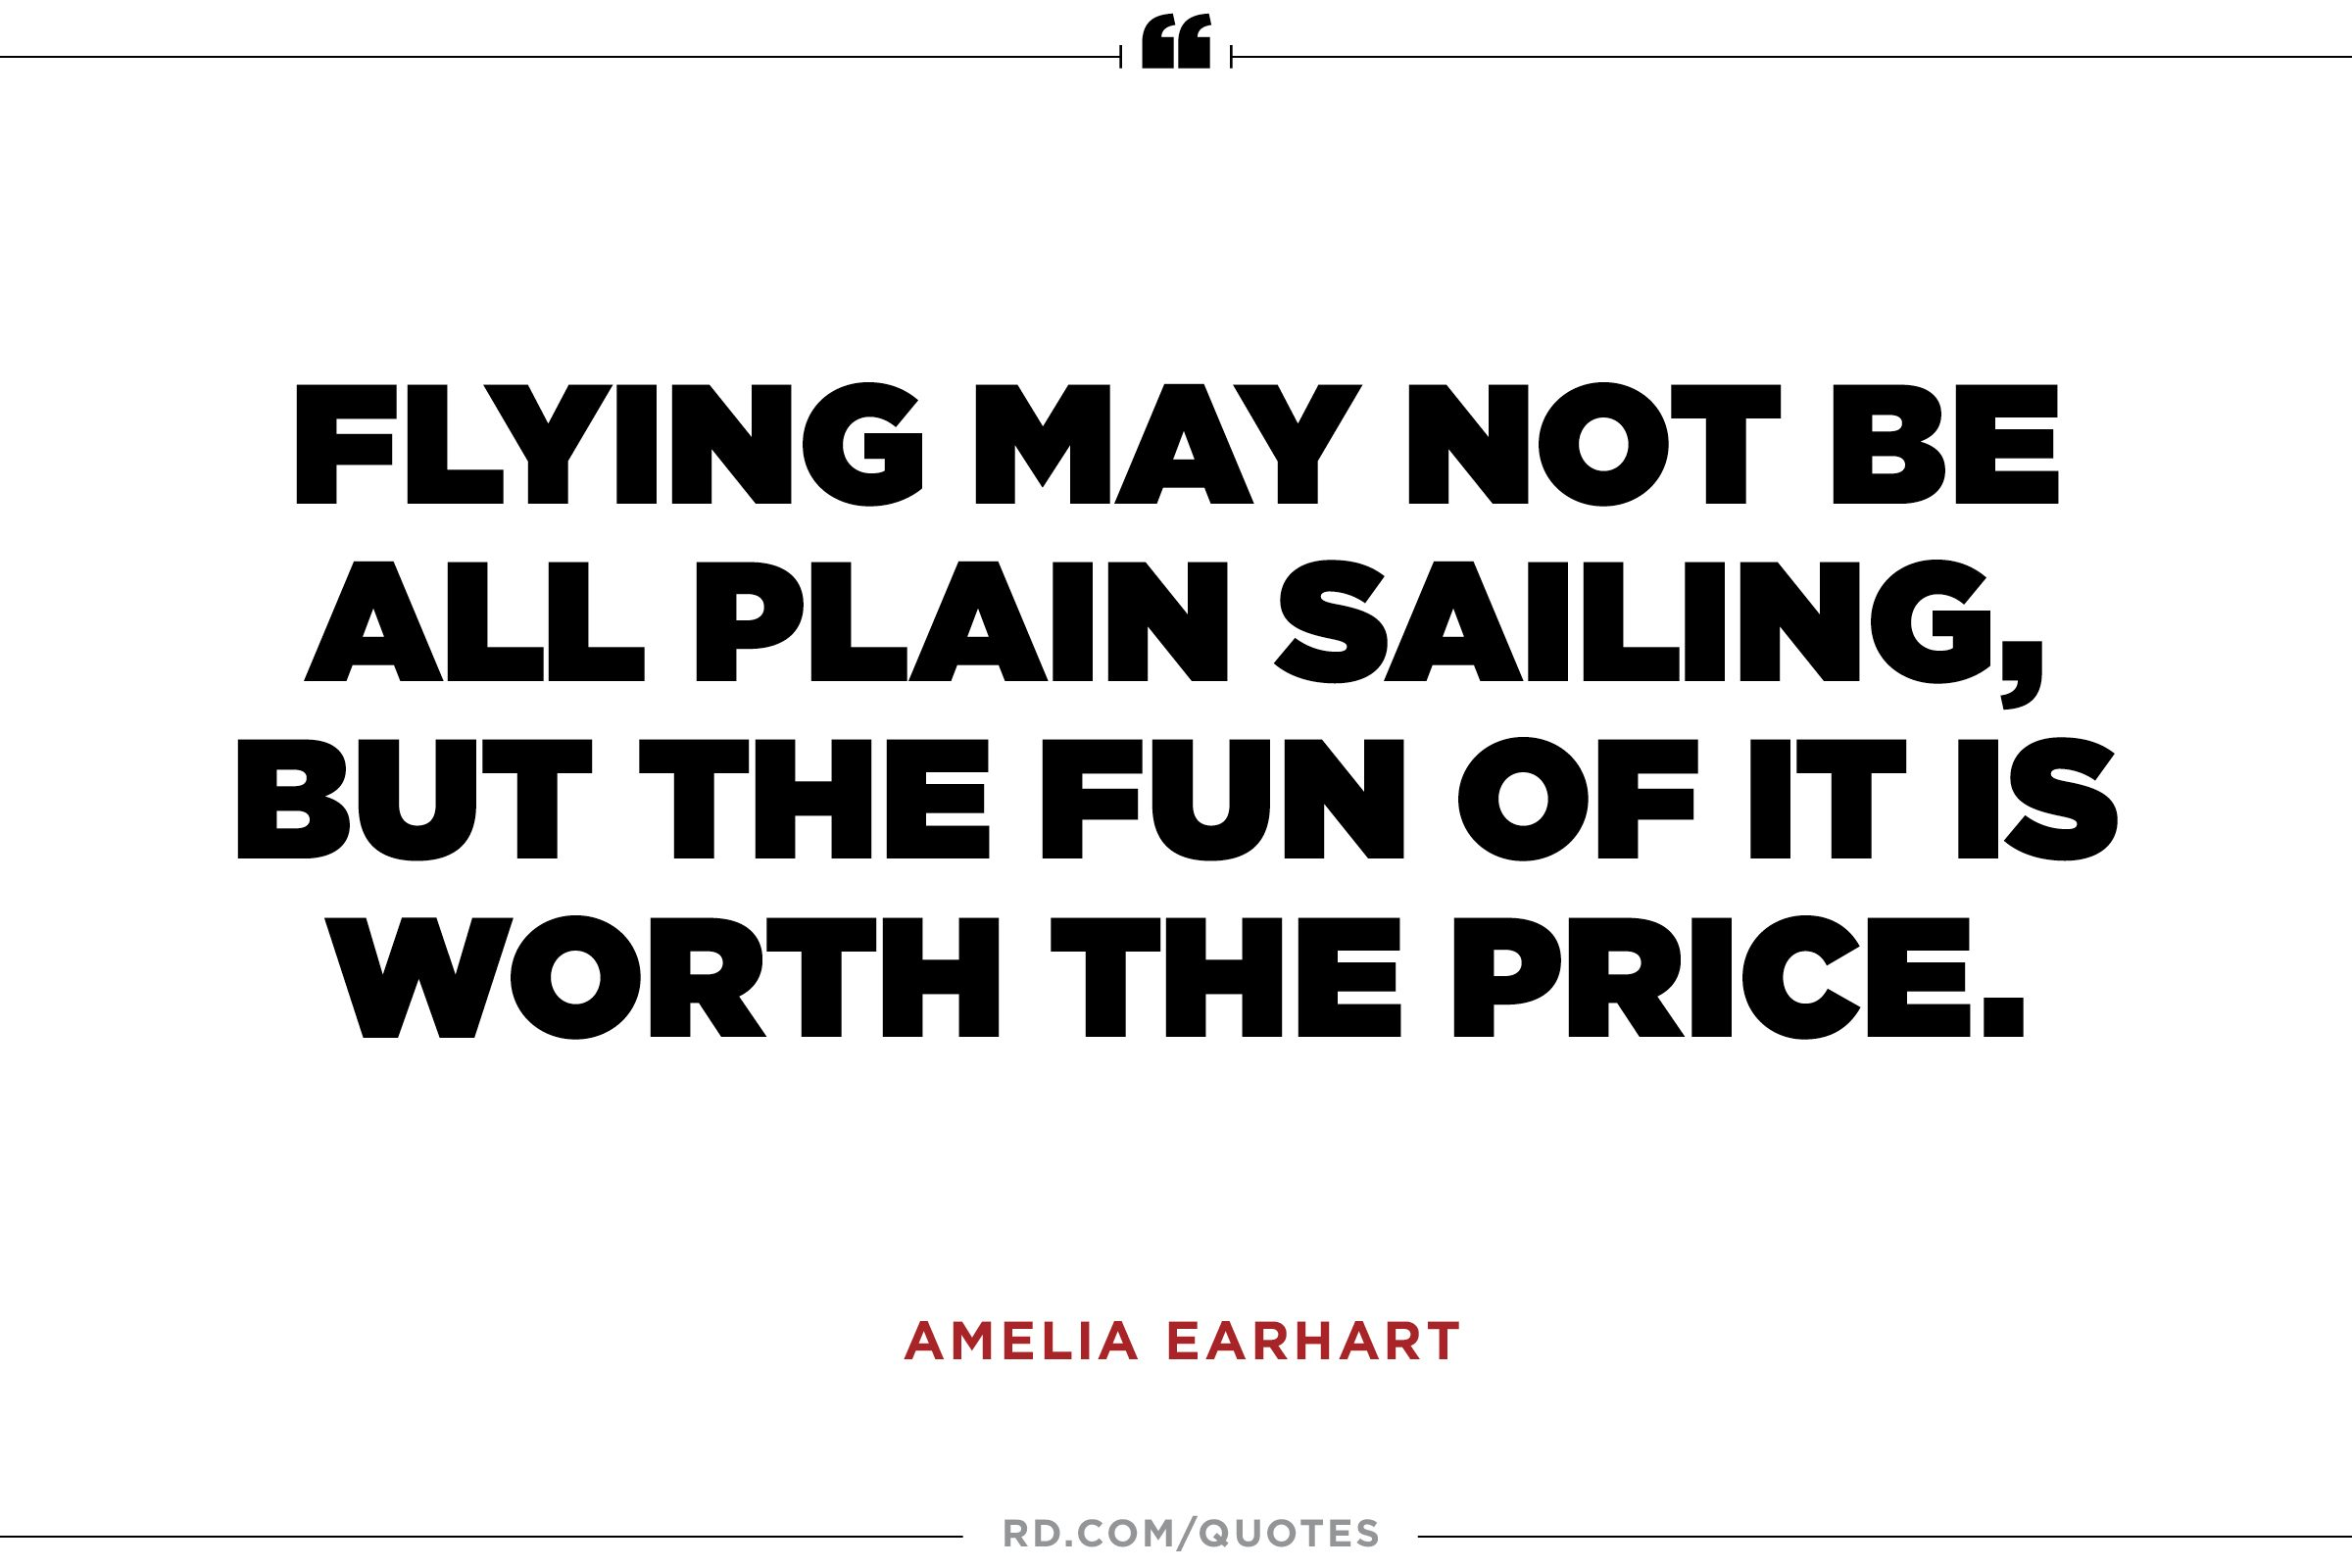 Can you help me with my essay on Amelia Earhart ?